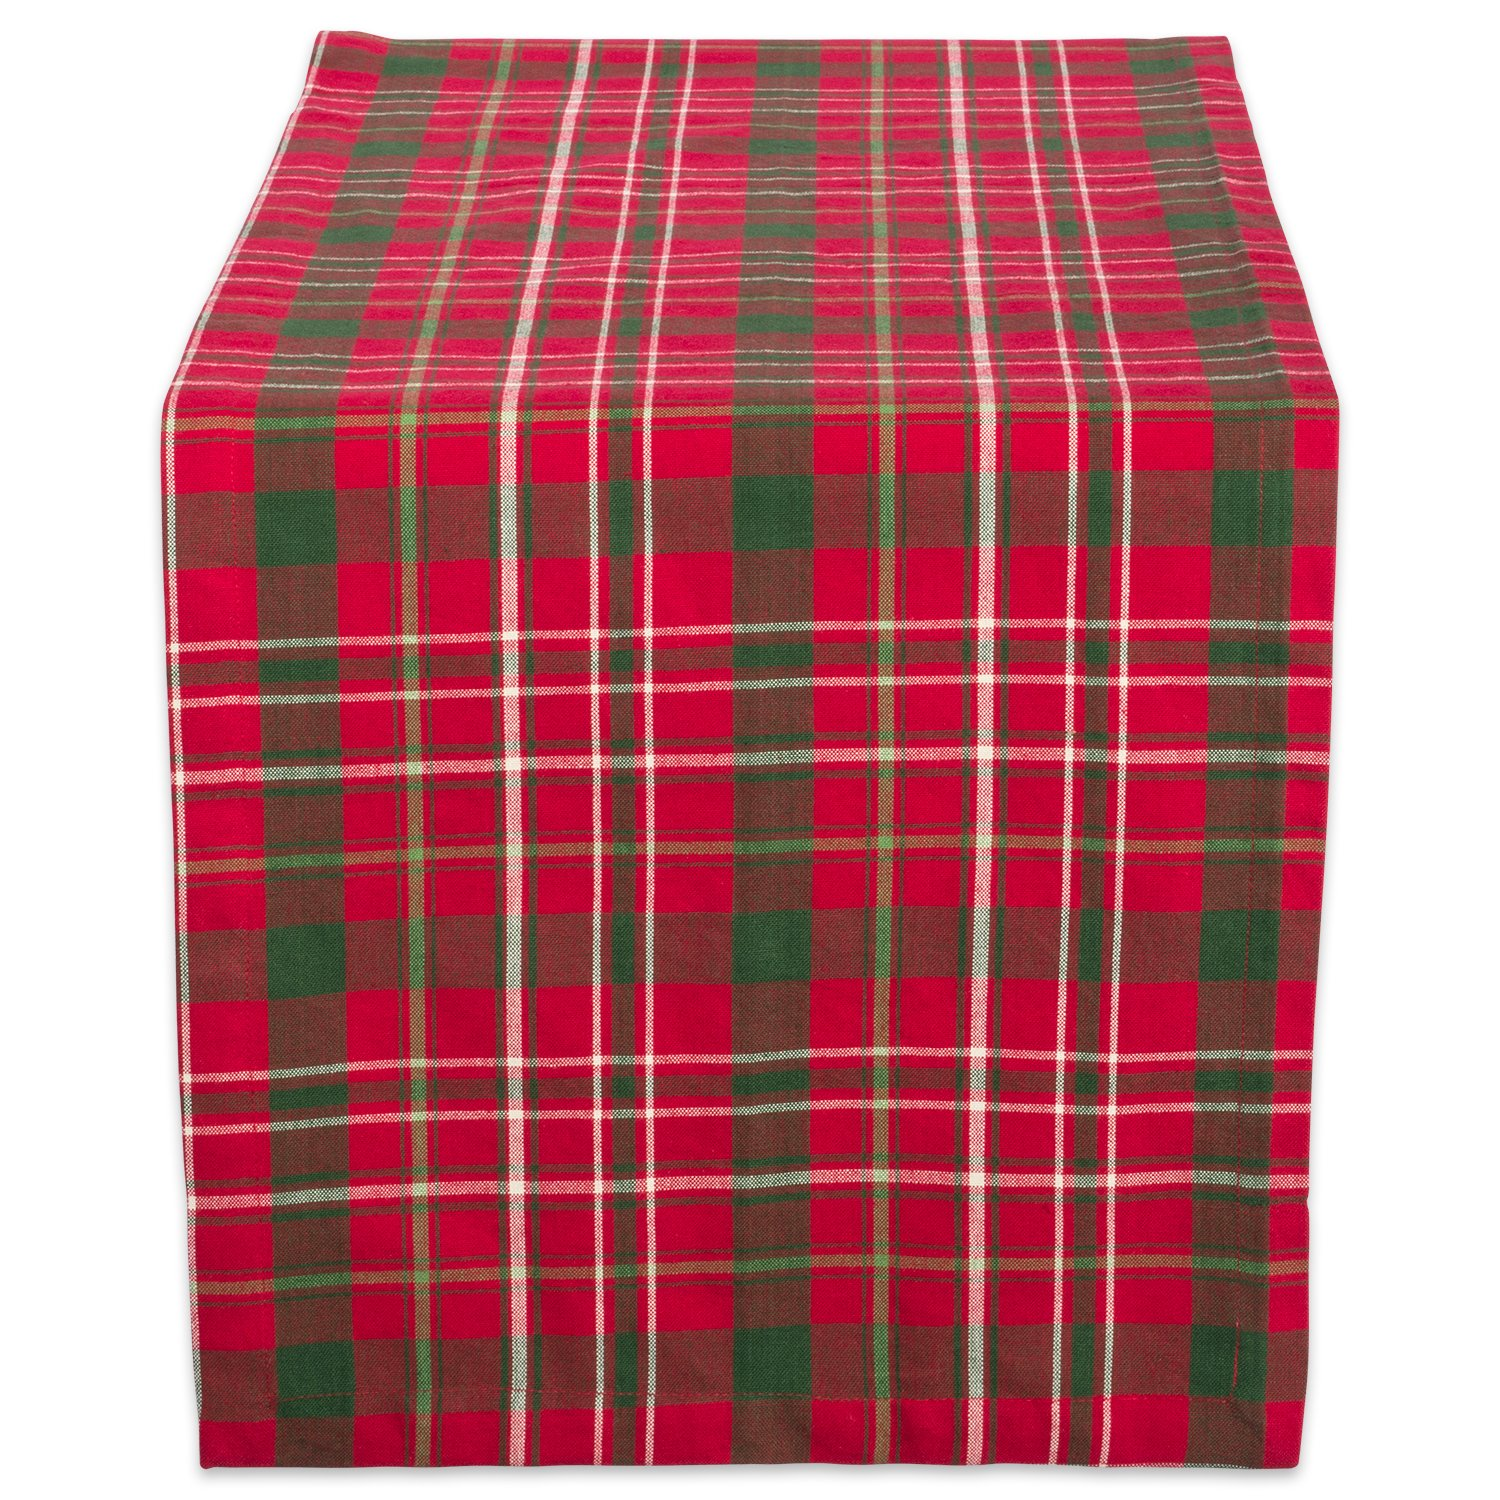 "DII Tartan Holy Plaid 100% Cotton Table Runner, Machine Washable for Holiday Gatherings, Dinner Parties, & Christmas (14x72"")"